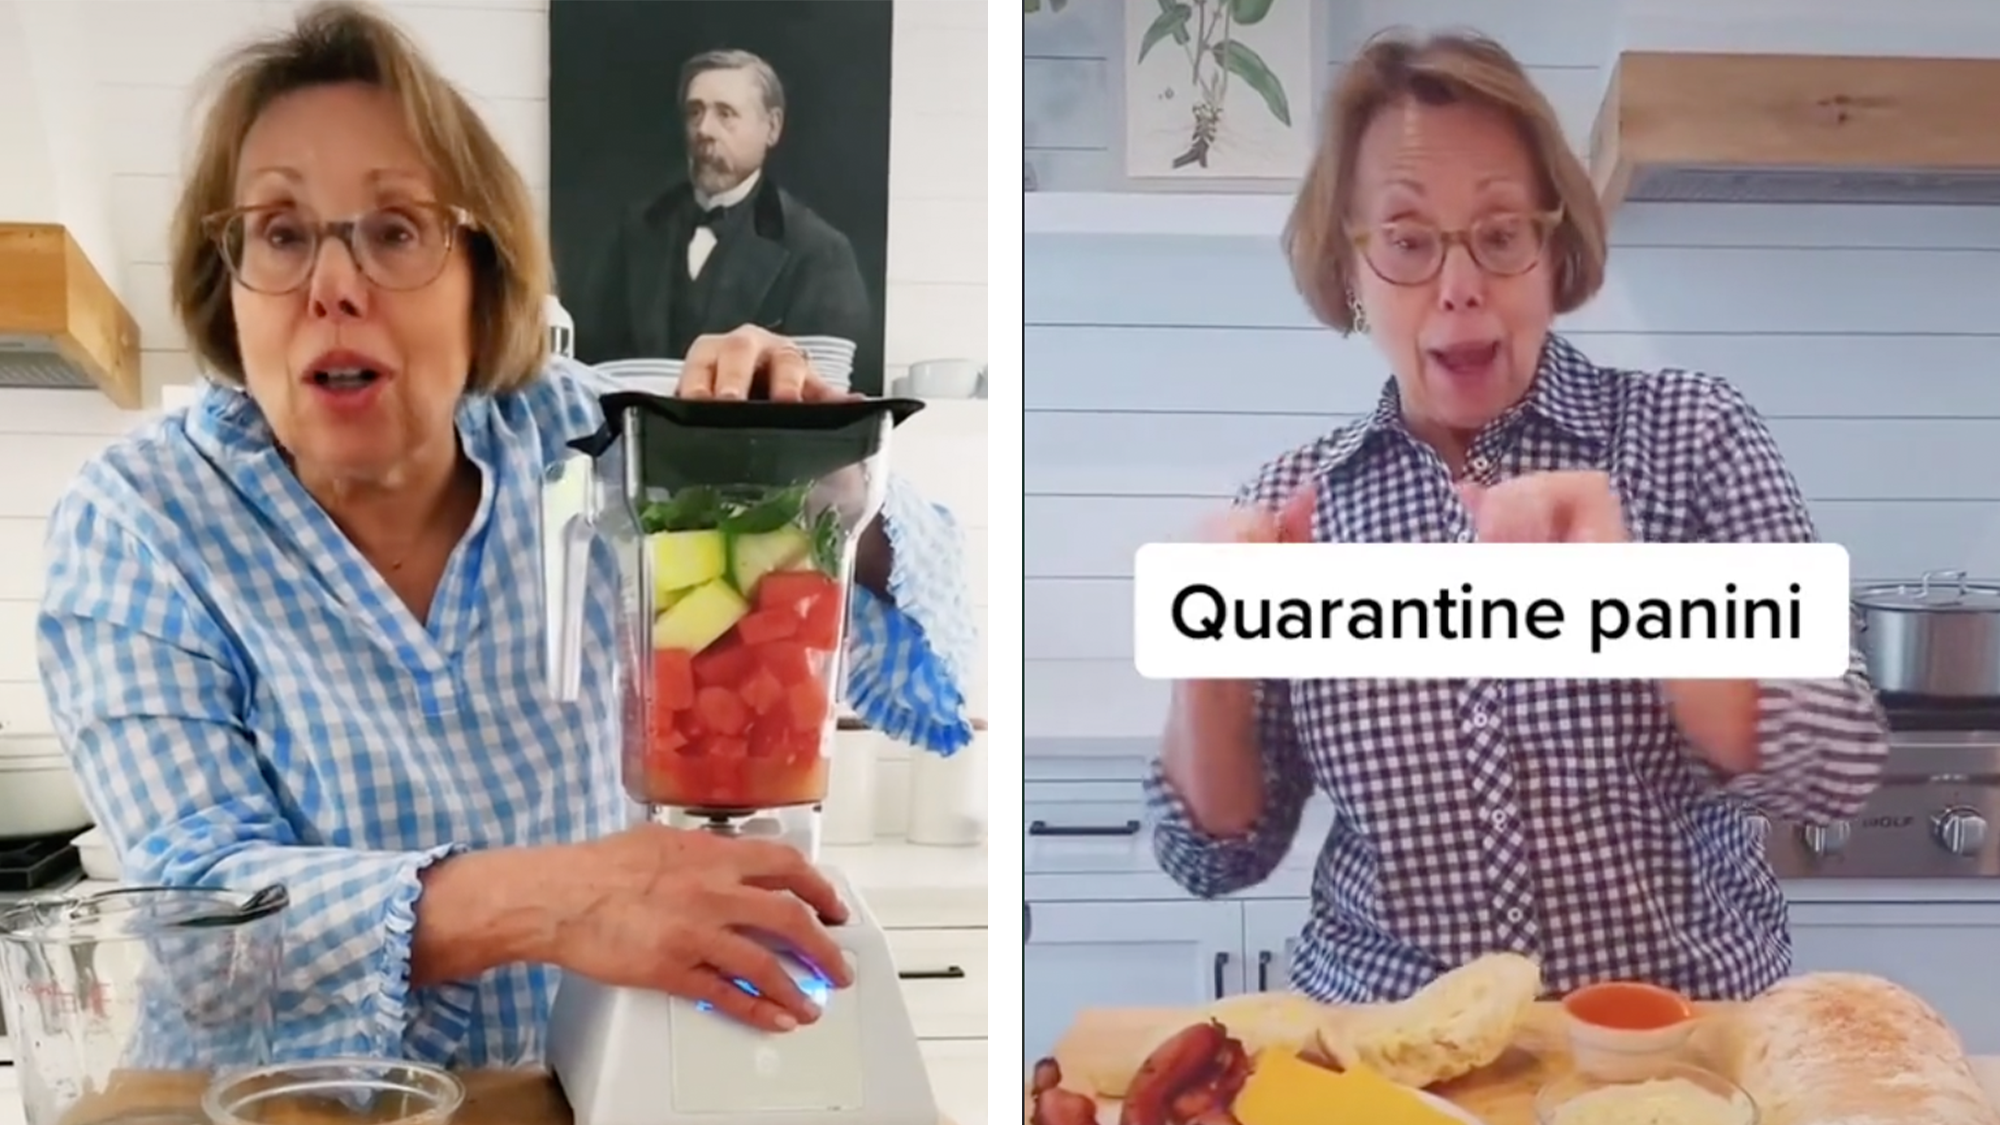 woman is cooking in two side-by-side photos